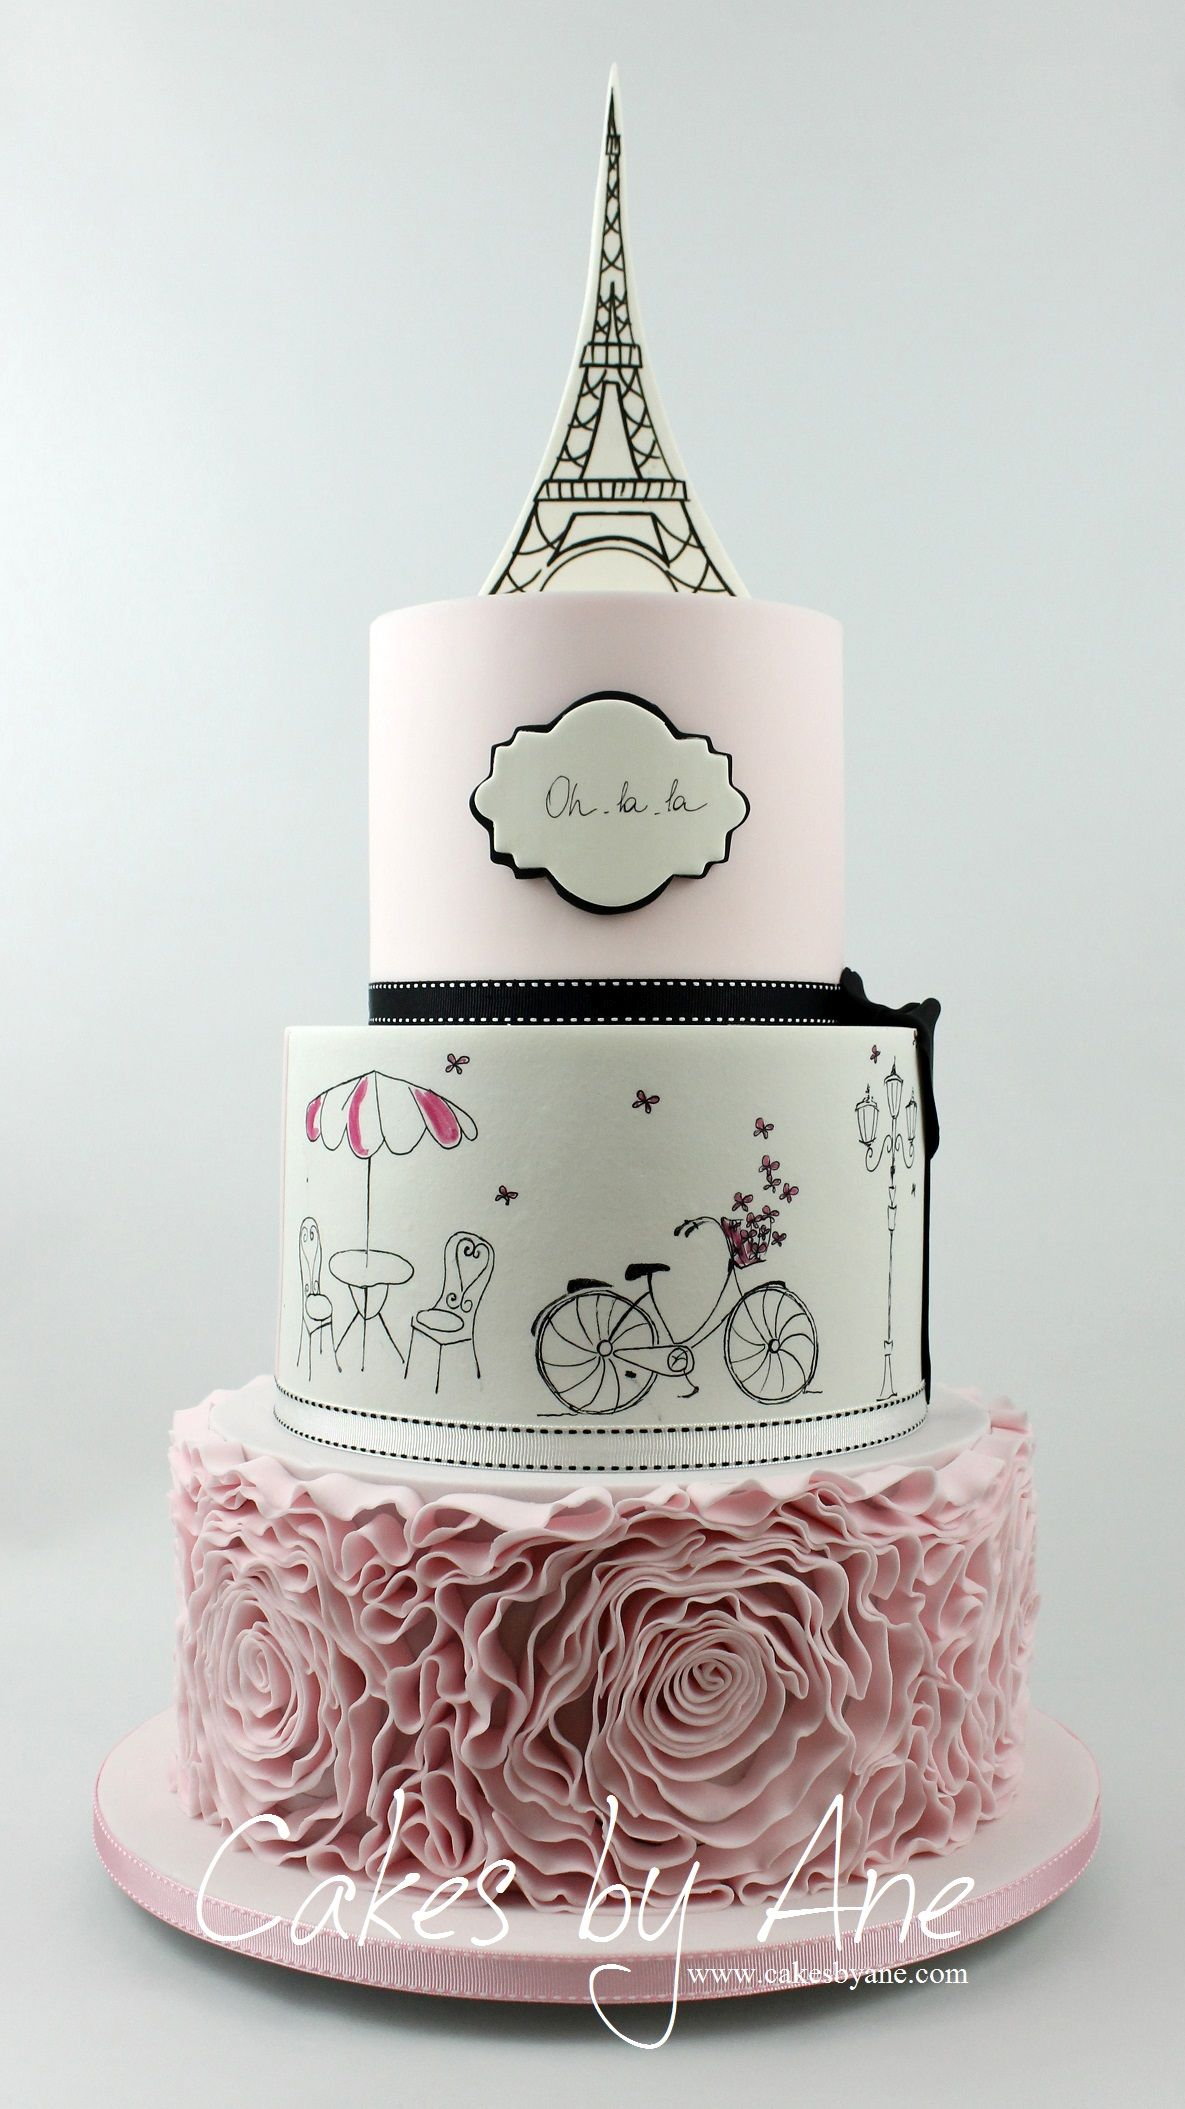 This Painted Cake Is Set At A French Cafe Under The Eiffel TowerOh La LaParisje Taime